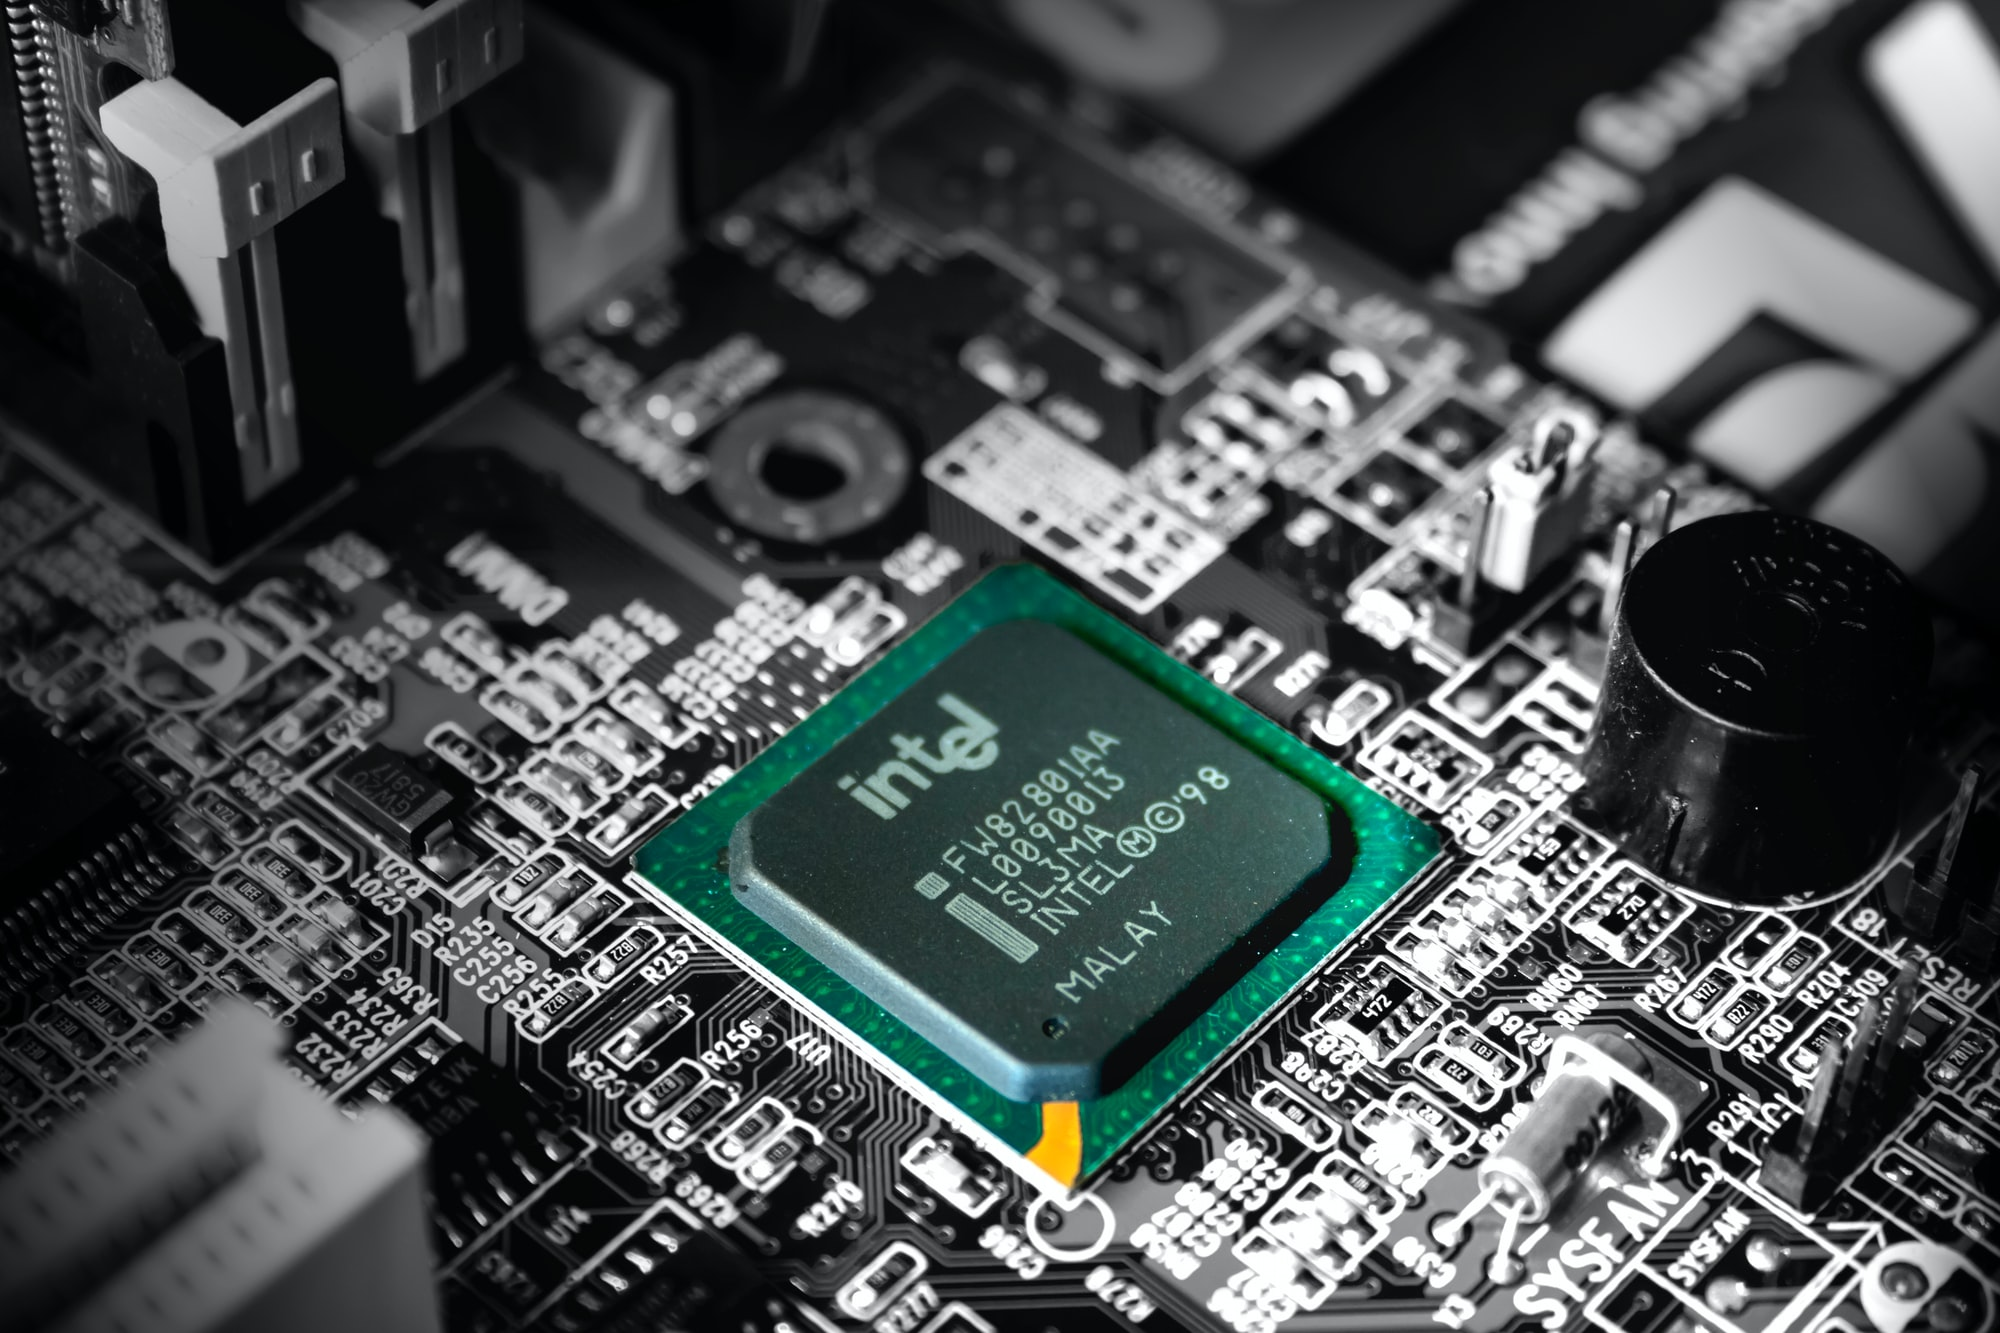 Intel's fear of missing out